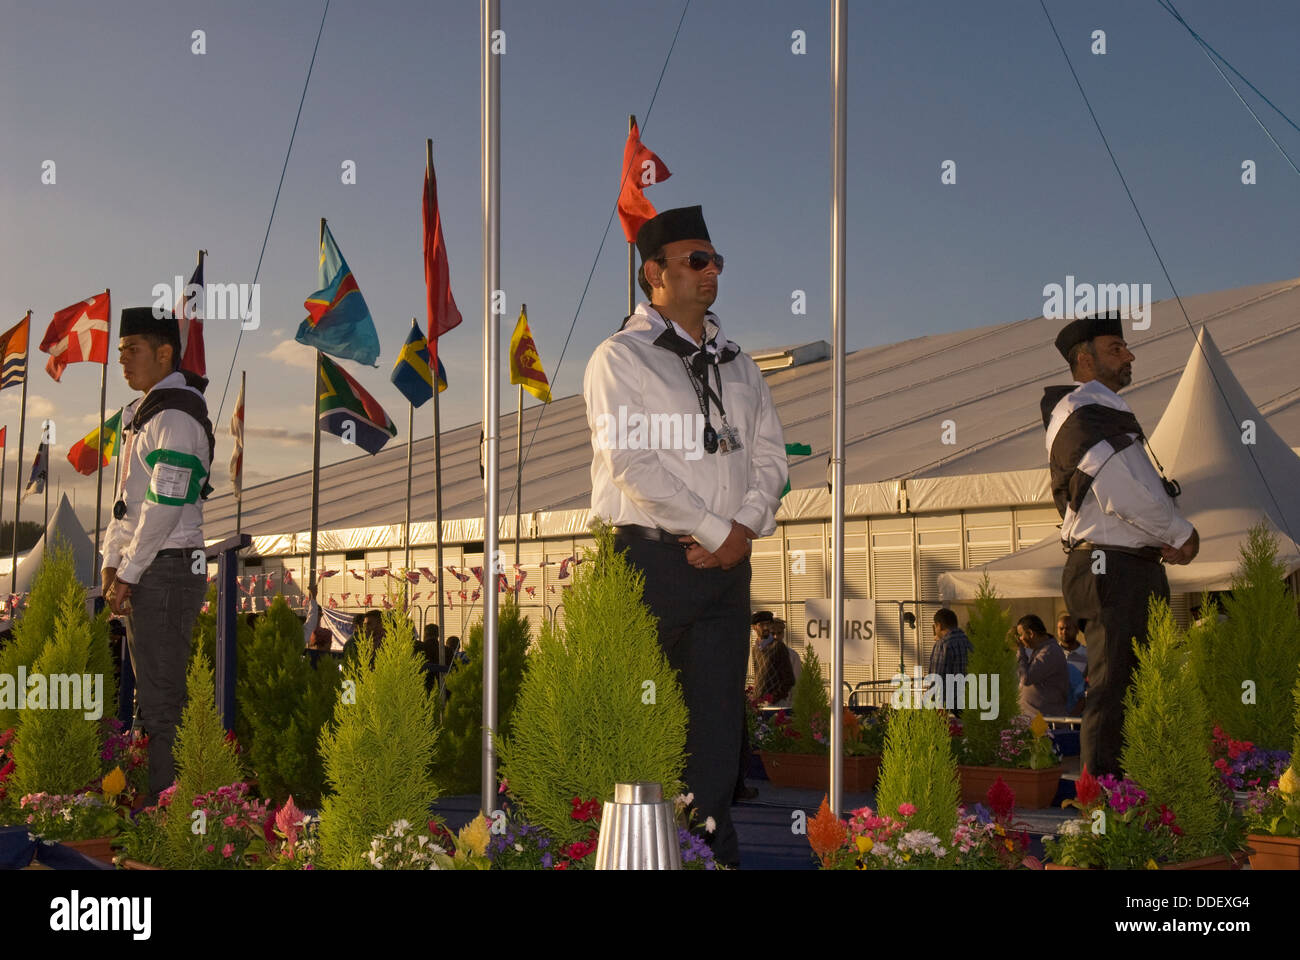 Muslims standing amidst national flags as a mark of respect to host country (UK) and the community during Jalsa - Stock Image